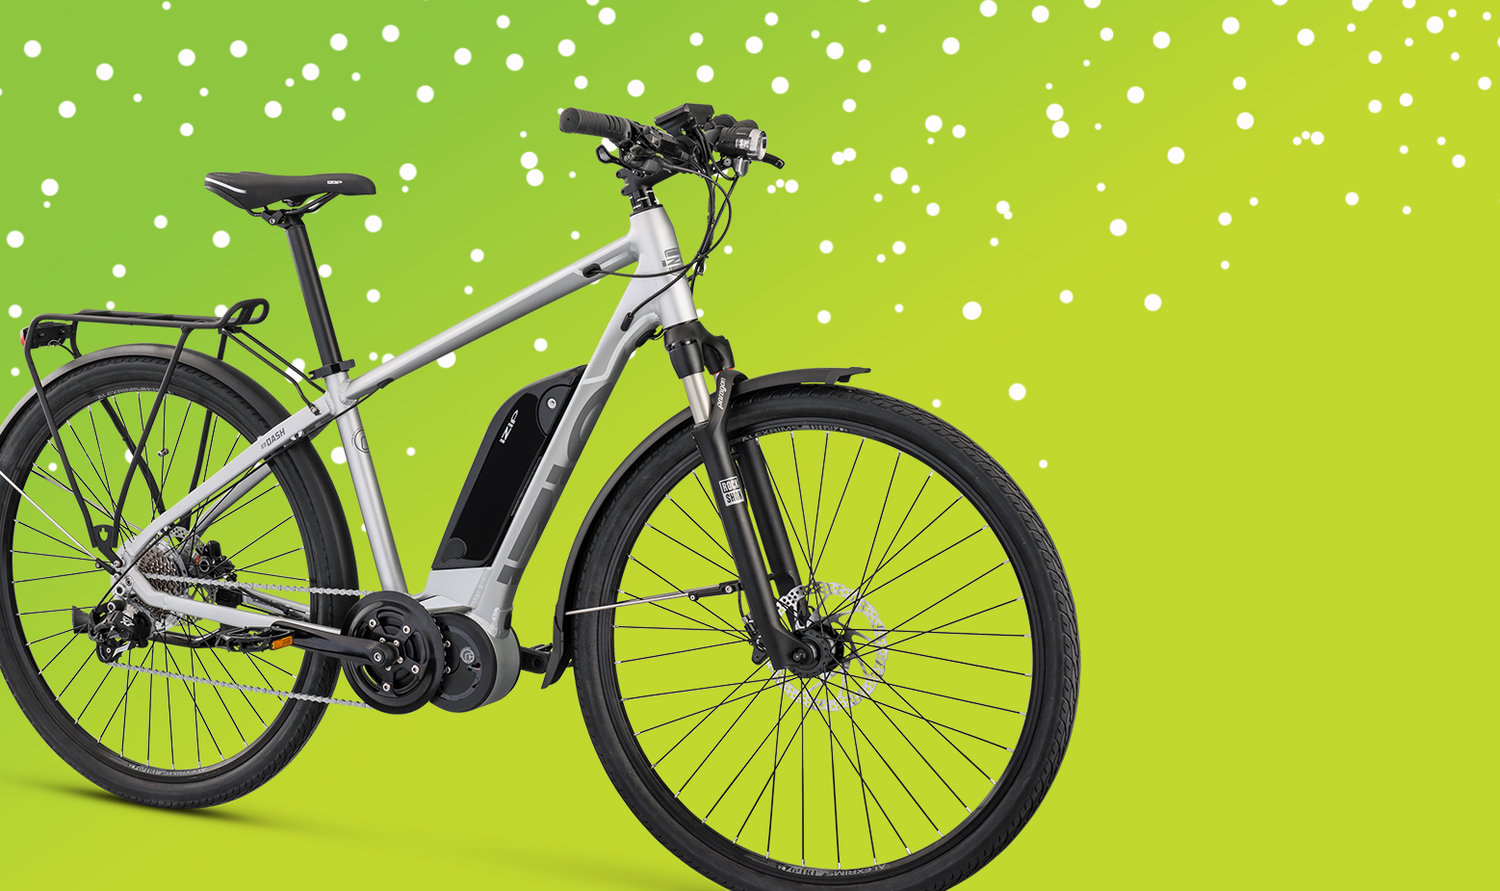 IZIP holiday2017 websitebanner2?1509576763 izip home izip electric bikes  at mifinder.co